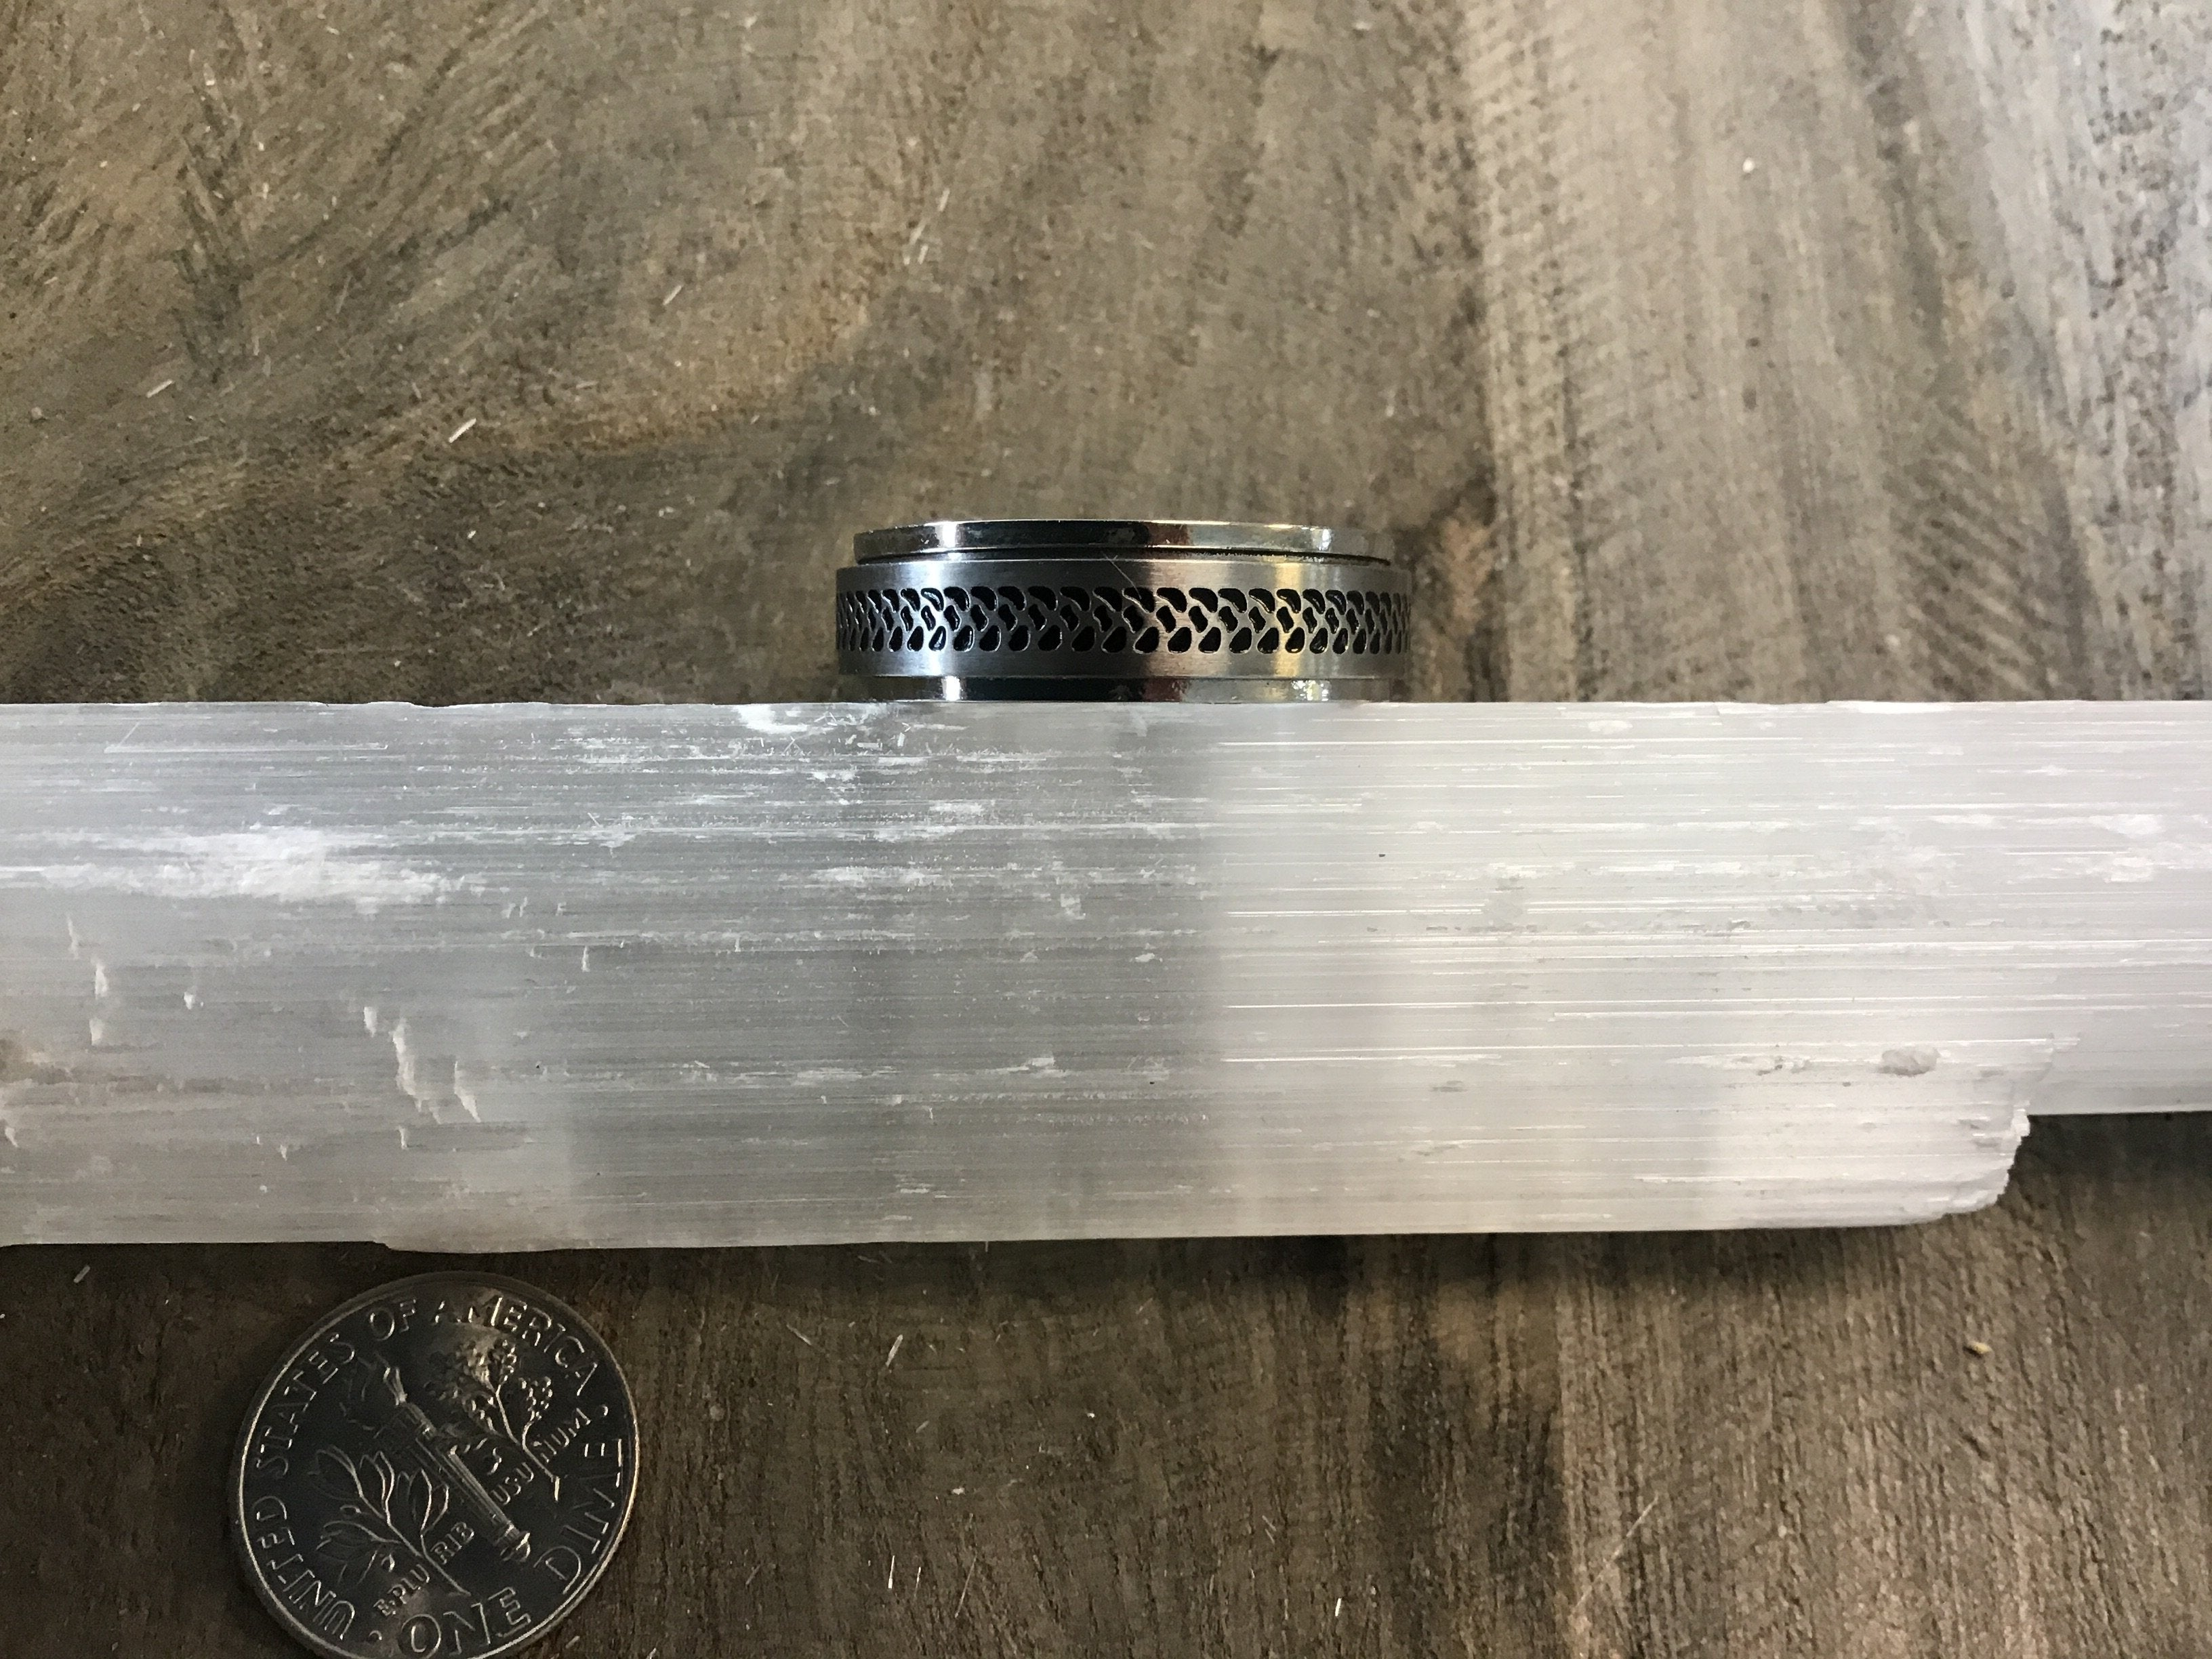 Stainless Steel Rings (Sizes 14-16)